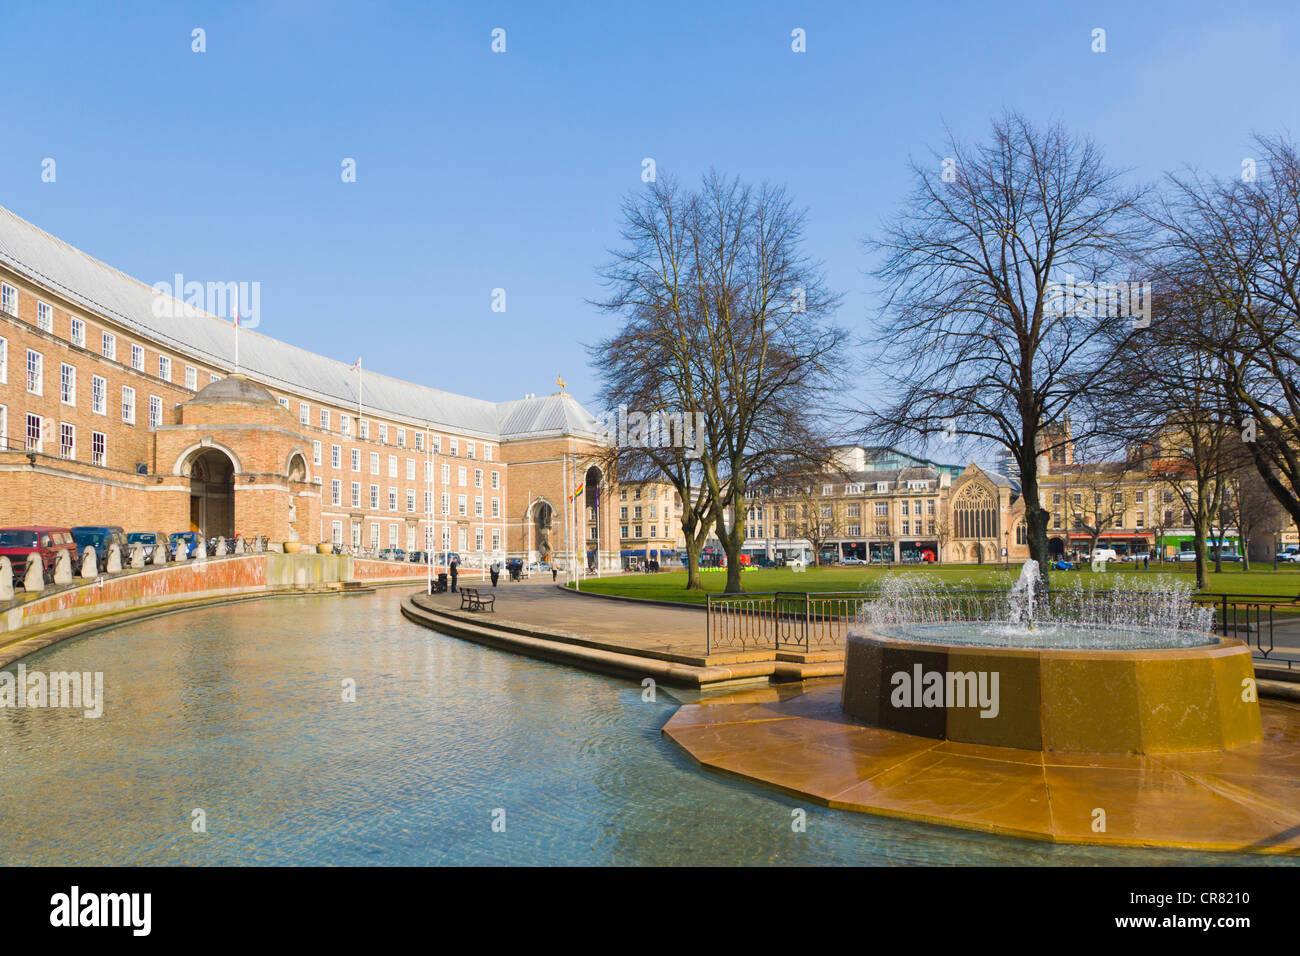 The Council House, the seat of local government, College Green, Bristol, Gloucestershire, England, United Kingdom, - Stock Image